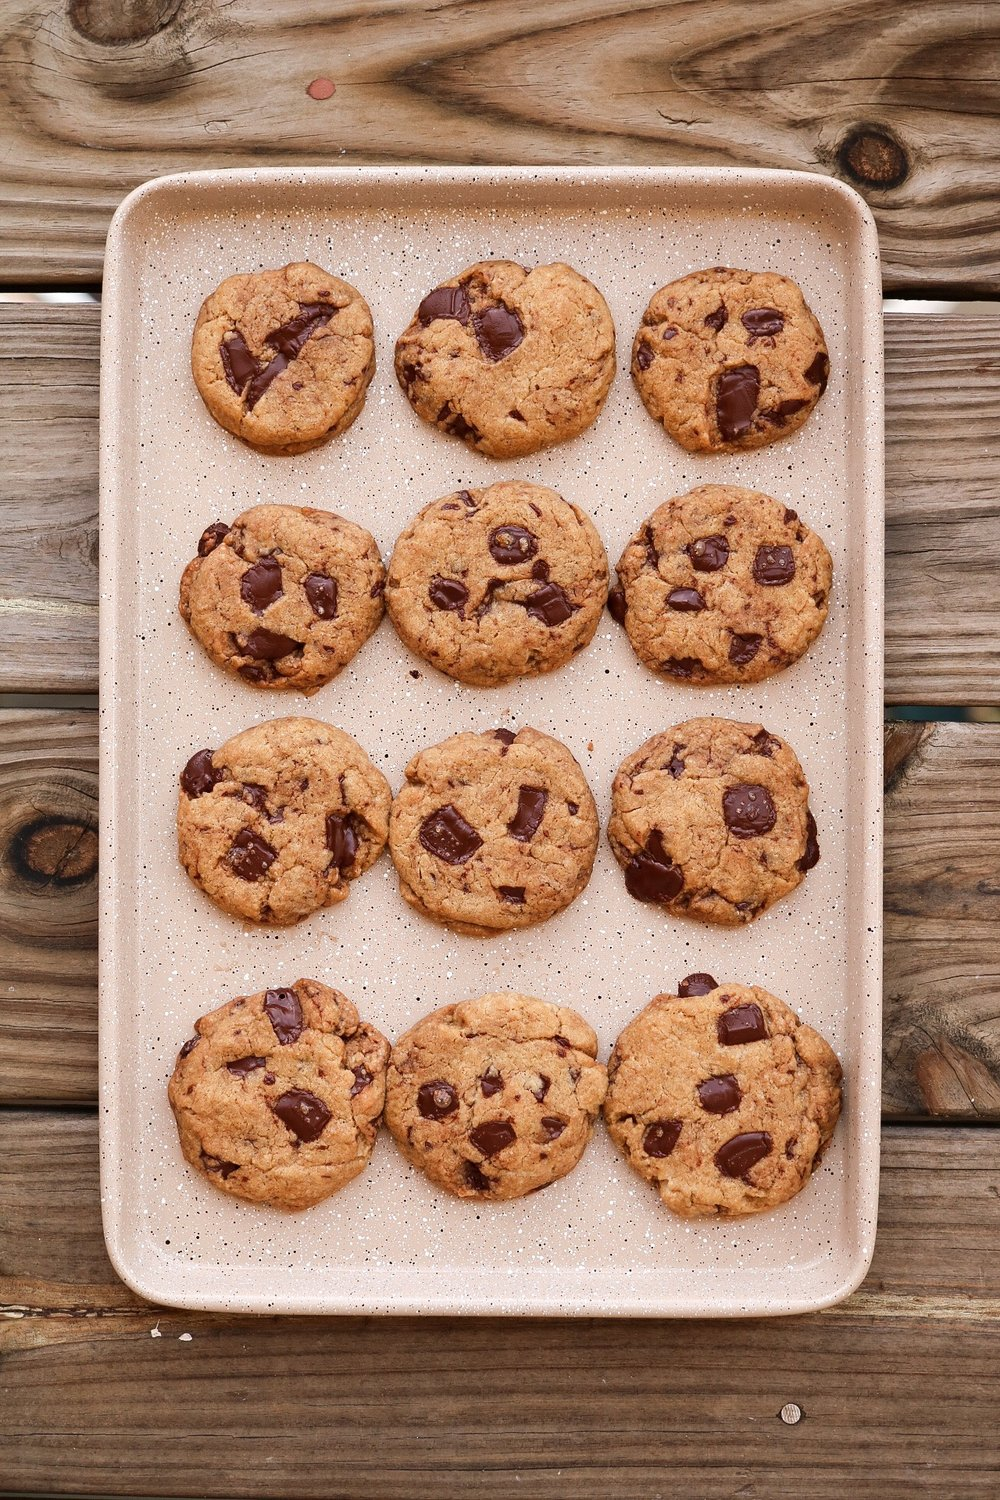 Chocolate Chip Cookies - INGREDIENTS:1 1/4 cup all purpose flour1/2 tsp salt1/4 tsp baking soda1/2 tsp baking powder2/3 cups coconut or brown sugar1/3 cup melted coconut oil1/4 cup warm water1/3 cup chopped chocolateINSTRUCTIONS:Preheat your oven to 350F. Whisk together the flour + salt + baking soda + baking powder and set aside. In a separate bowl, mix together your sugar + oil + warm water*. Add the wet mixture to the dry, and mix until fully incorporated - but don't over-mix! Add and fold in your chocolate. Line a large or two small baking sheet(s) with parchment paper, and scooping your cookie dough - scoop a Tablespoons' worth, and roll between your palms. Place the balls on the baking sheets and slightly flatten using your palm. Bake your cookies for 15 minutes - and enjoy.* make sure that your water is not cold, because cold water will Harden your melted coconut oil and the texture will be wrong. When first testing this recipe, it happened to me the first few times and then I realized it was the water.